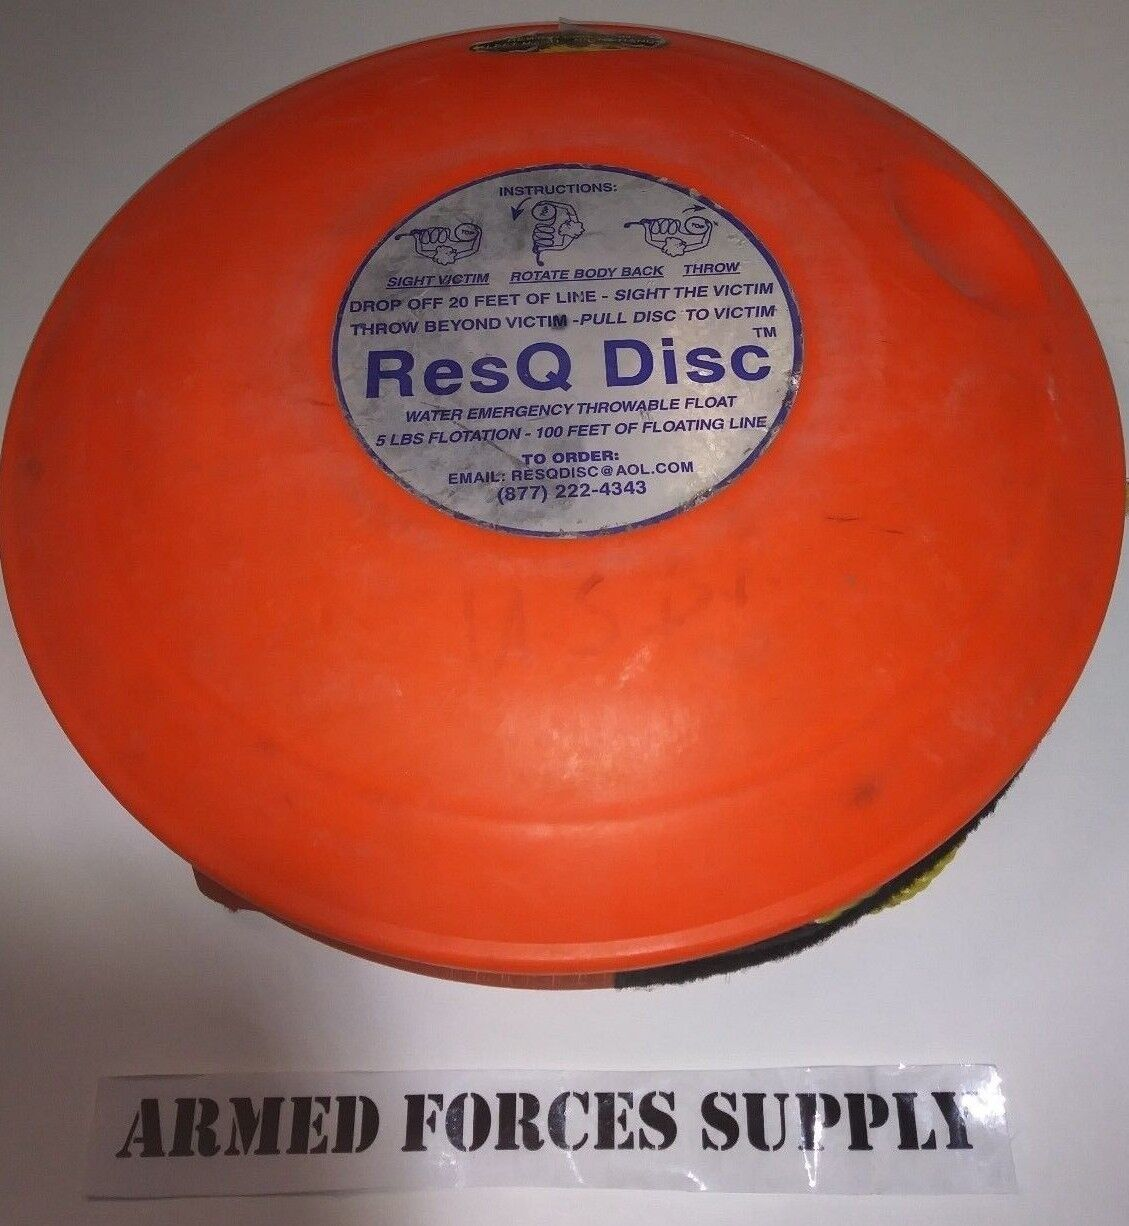 RESQ DISC WATER FLOAT EMERGENCY THROWABLE LIFE SAVER FLOTATION RESCUE DEVICE